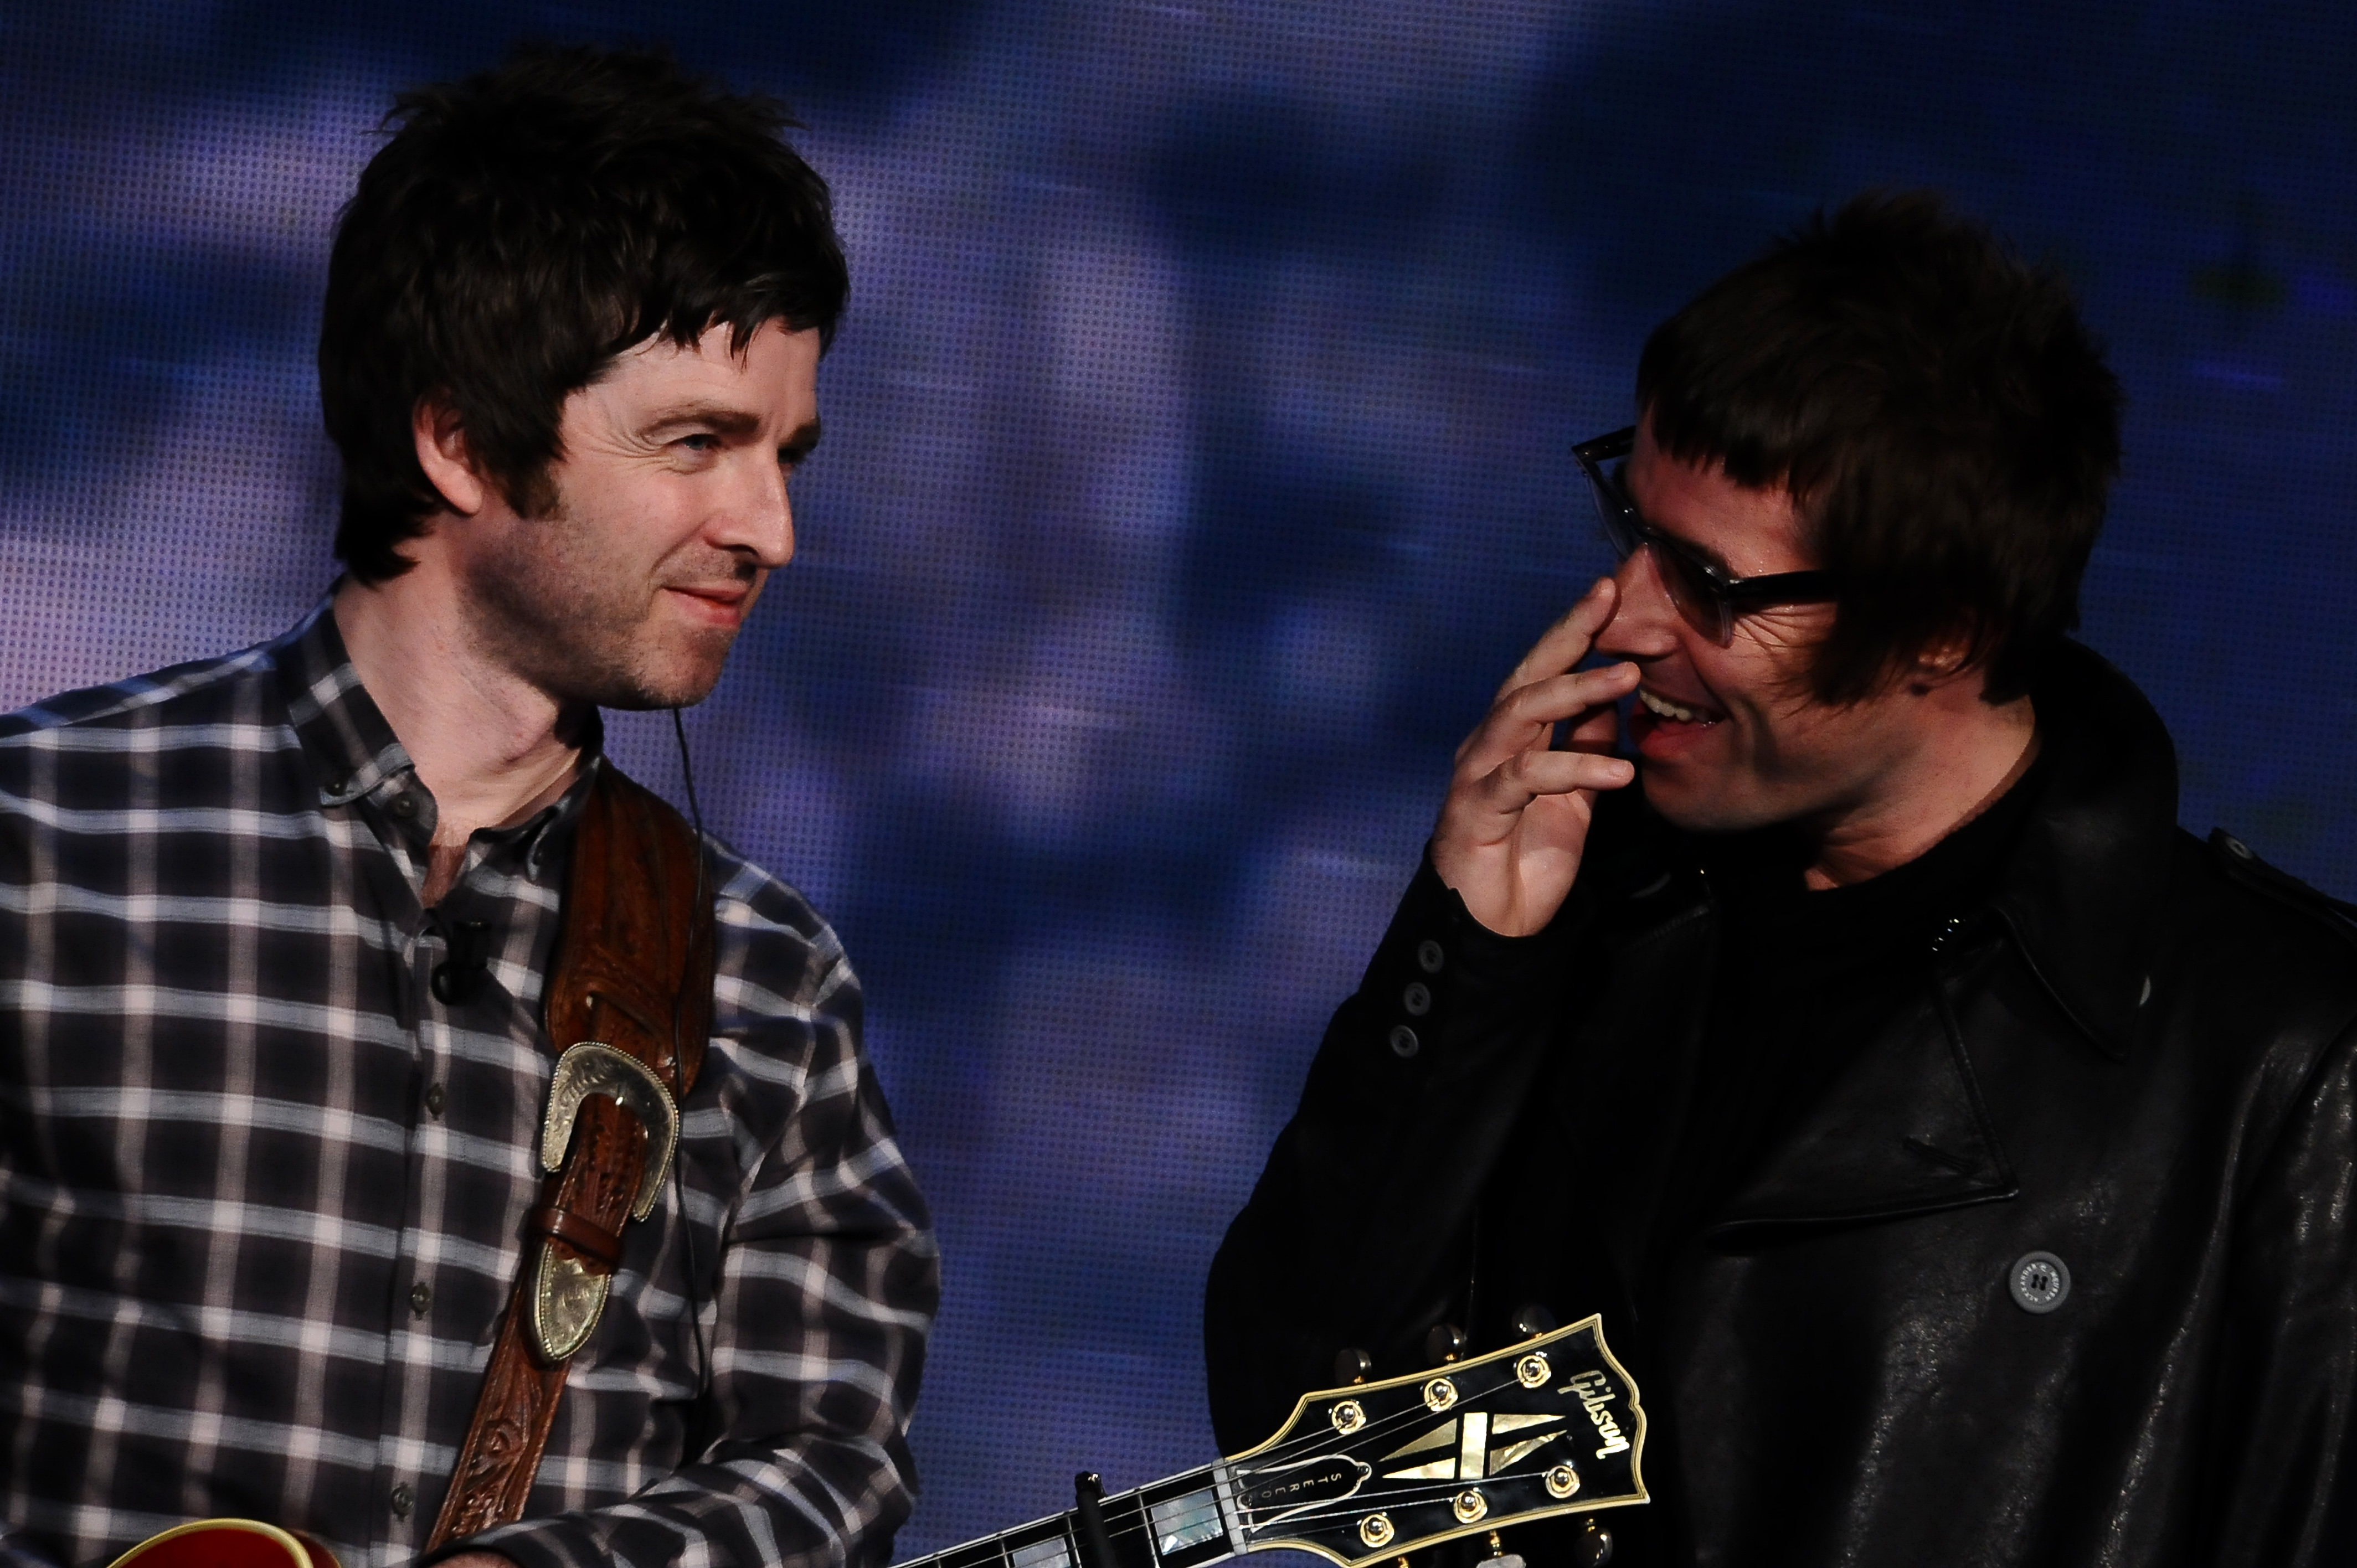 The harshest burns from warring Oasis brothers Liam and Noel Gallagher